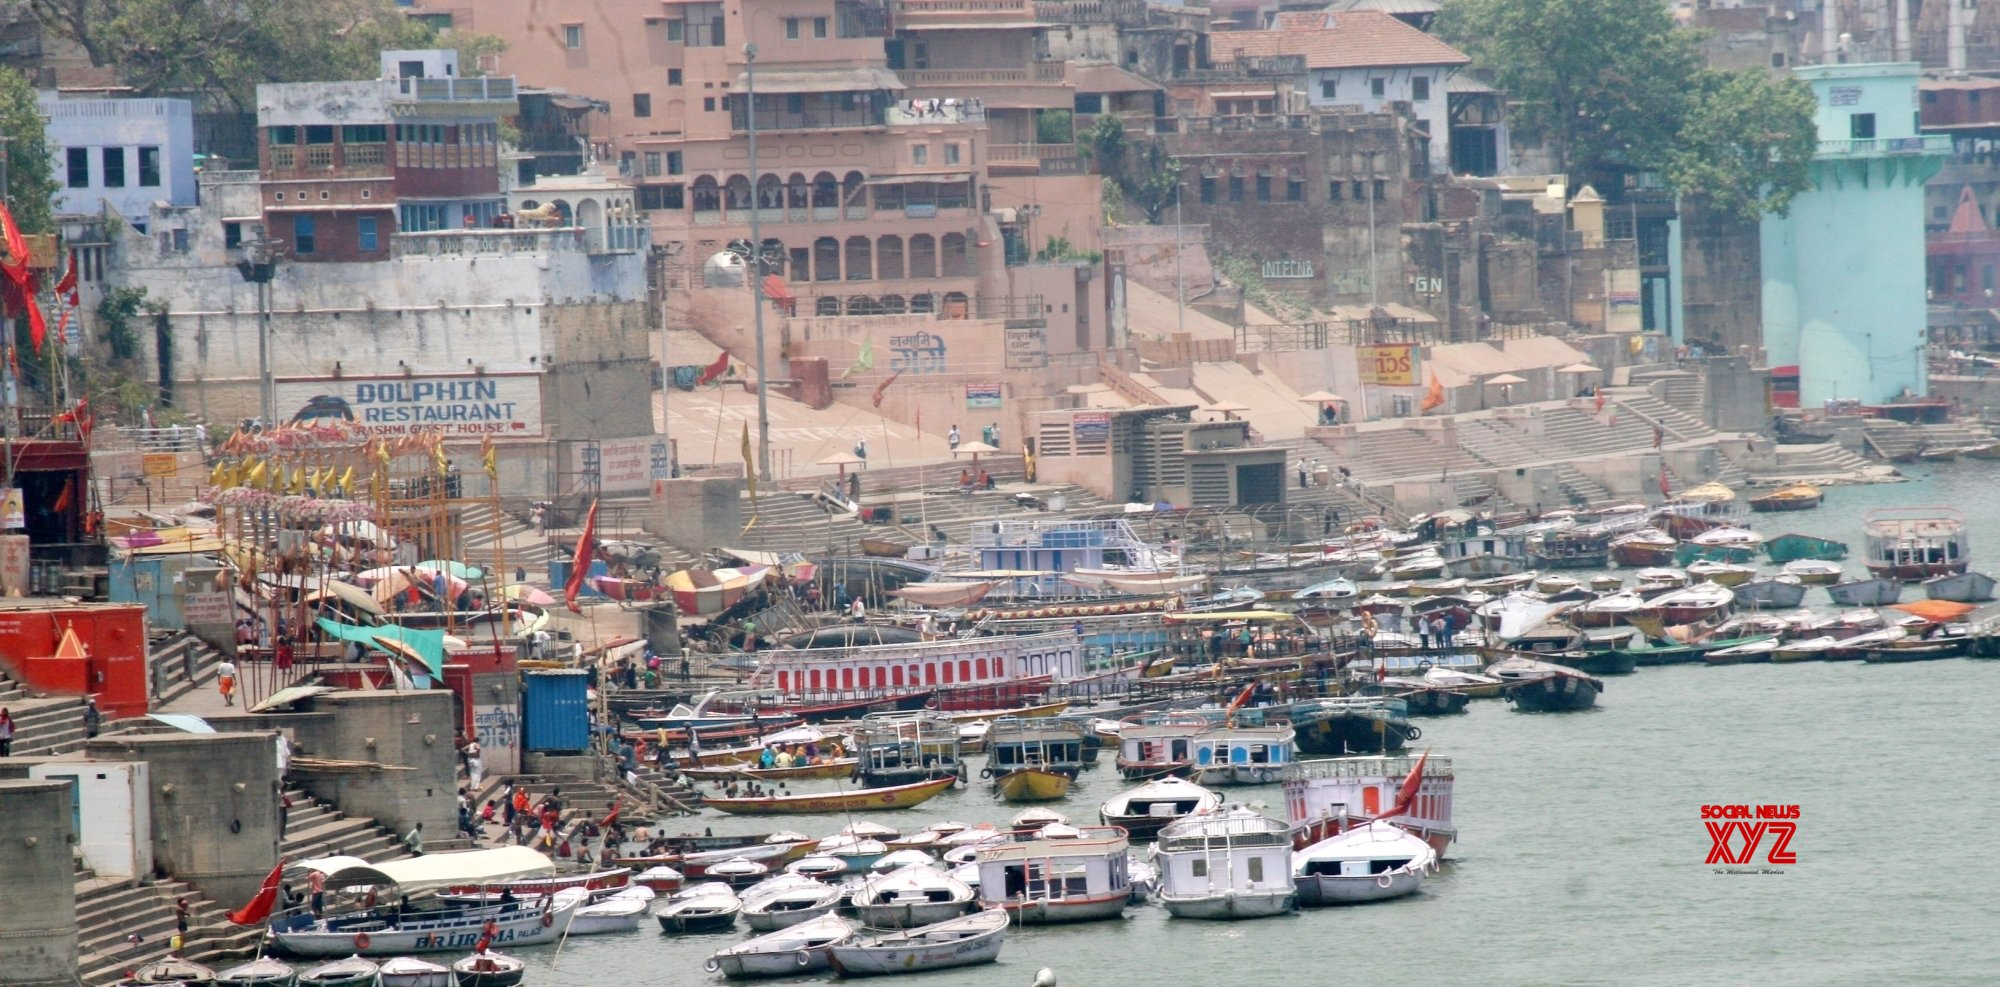 Varanasi: Varanasi to have ropeways to ease road congestion #Gallery